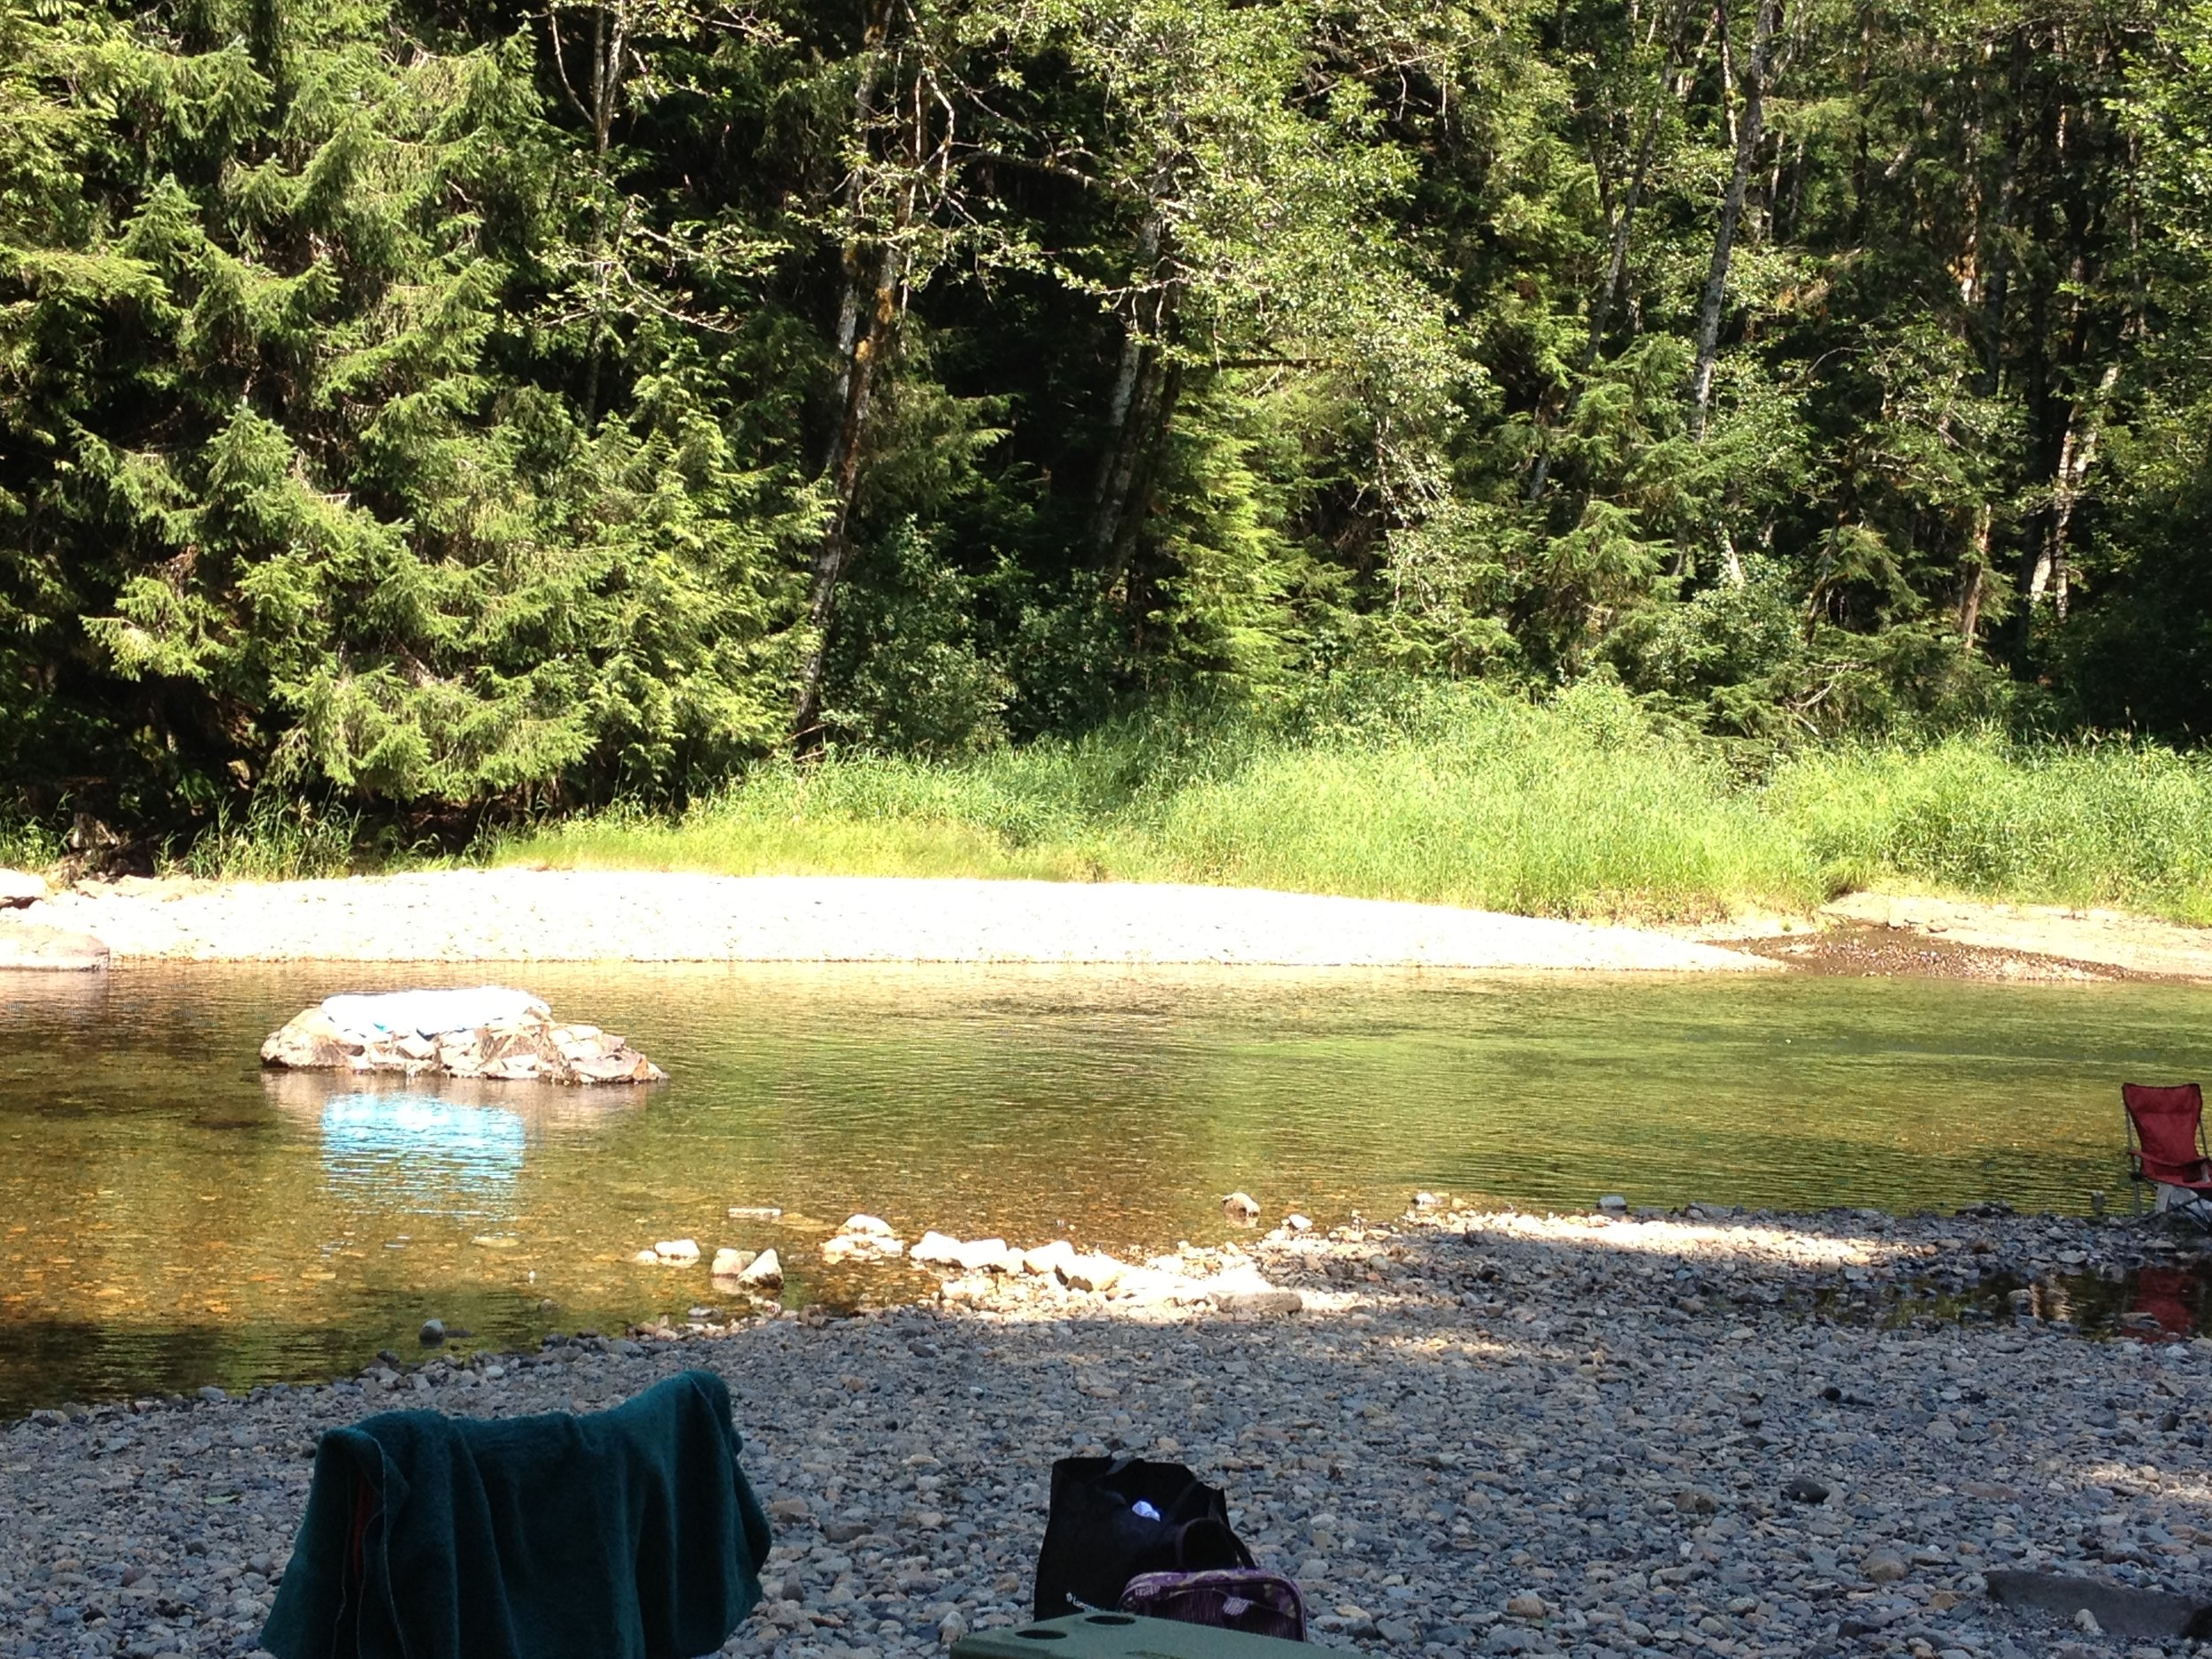 Location on Snoqualmie River where Teresa Banks was floating